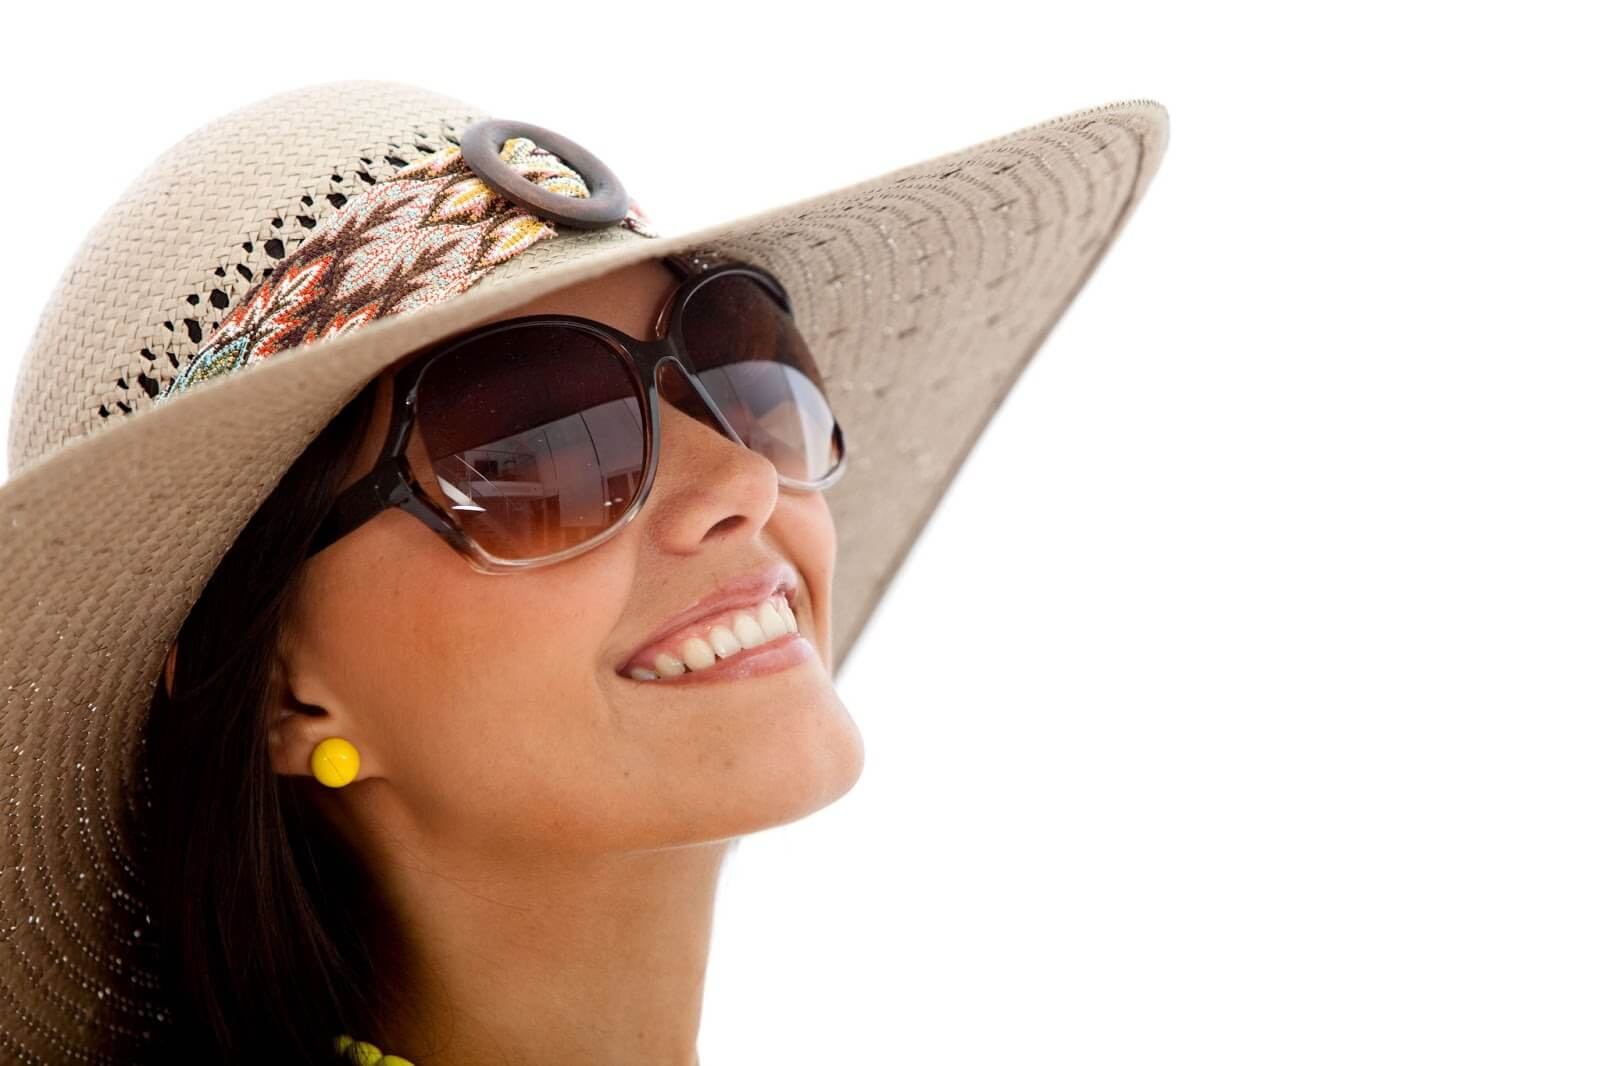 Tips About What To Look For When Buying A Sunglass